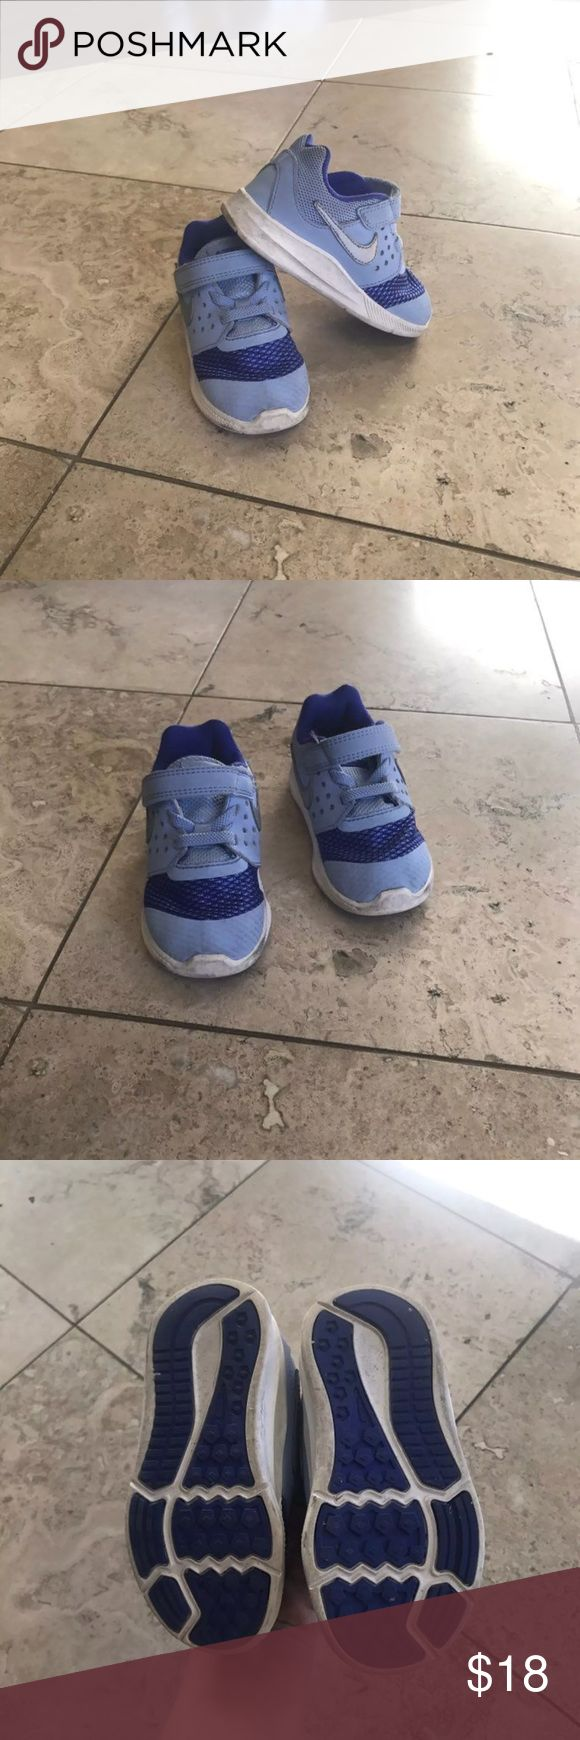 Nike kids shoes In good pre owned condition. Unisex size 7 Nike Shoes Sneakers